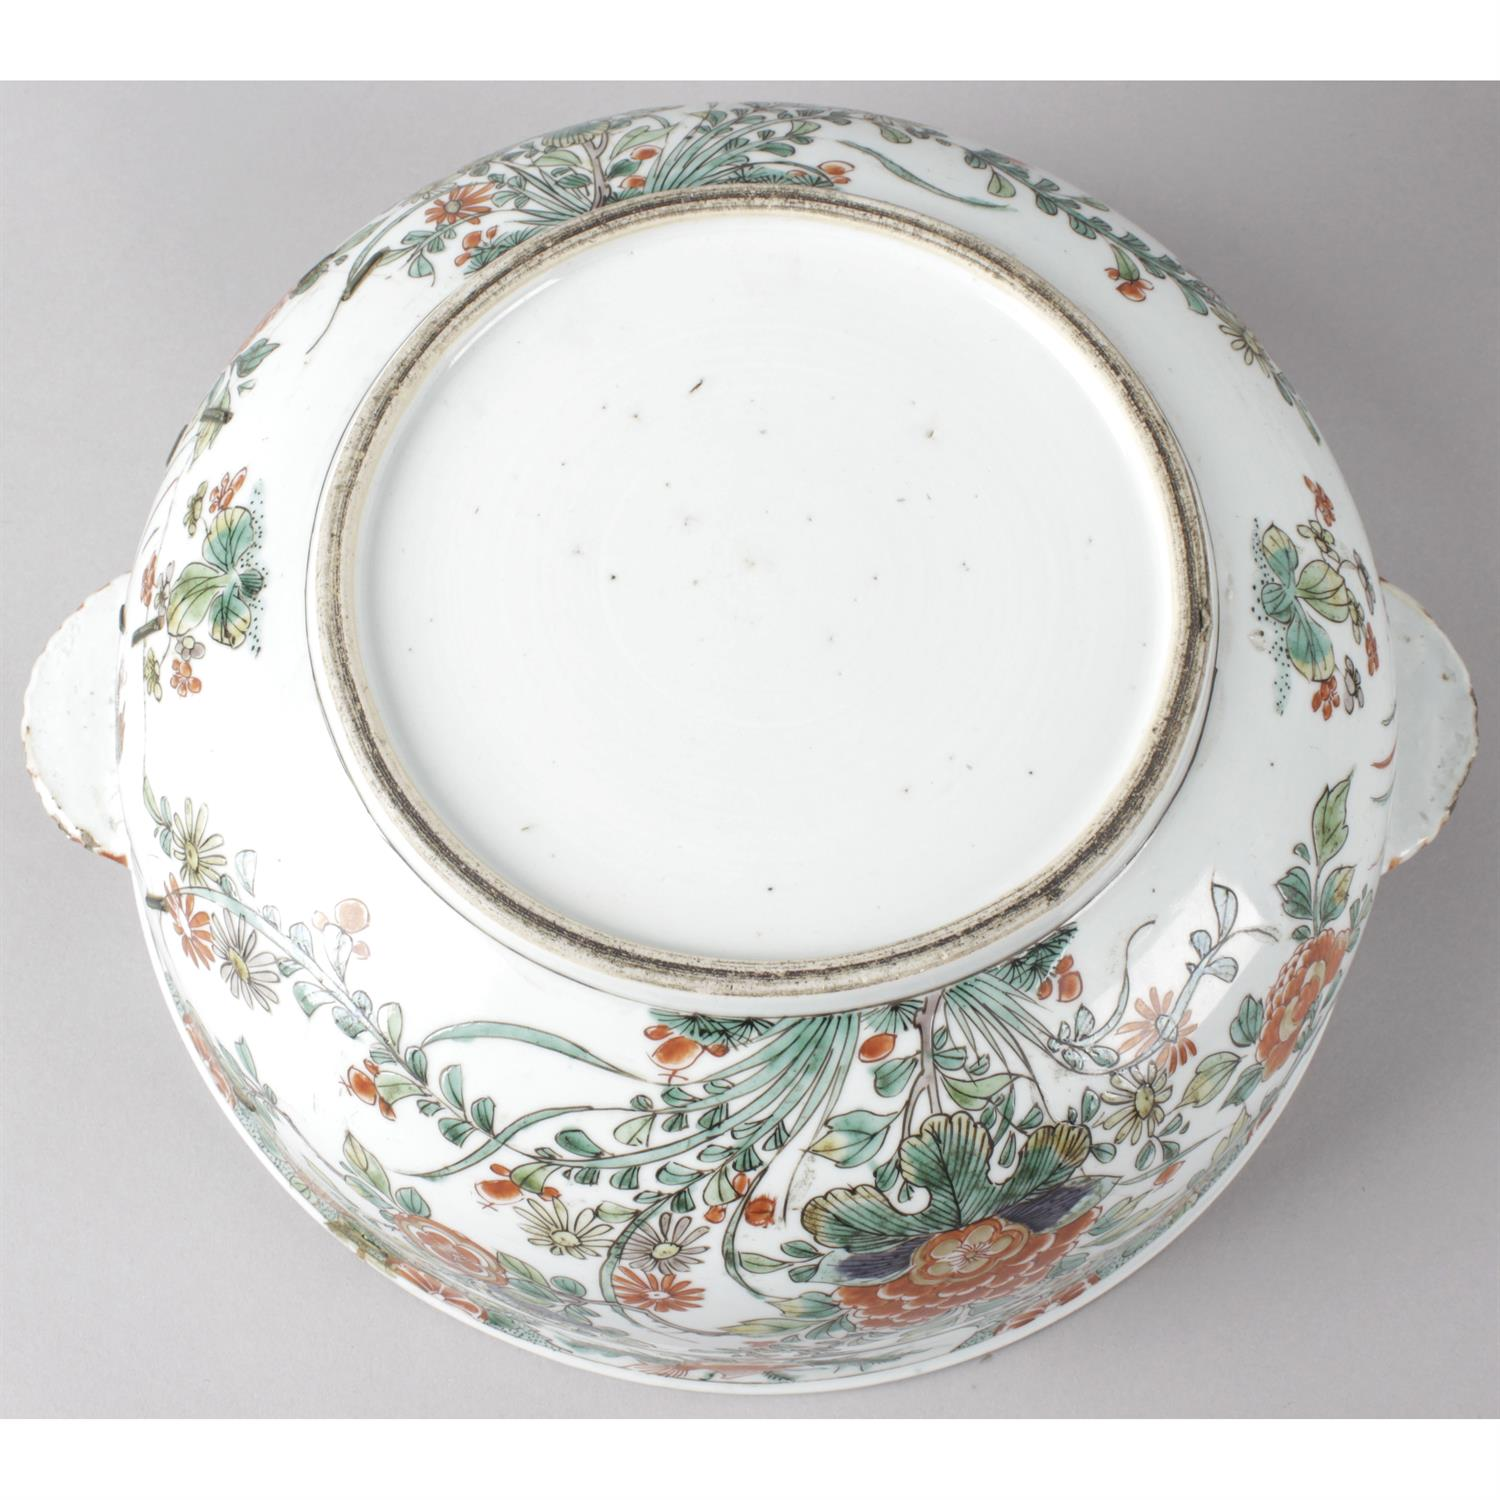 A twin handled oriental dish with cover together with an Imari bowl. - Image 3 of 3